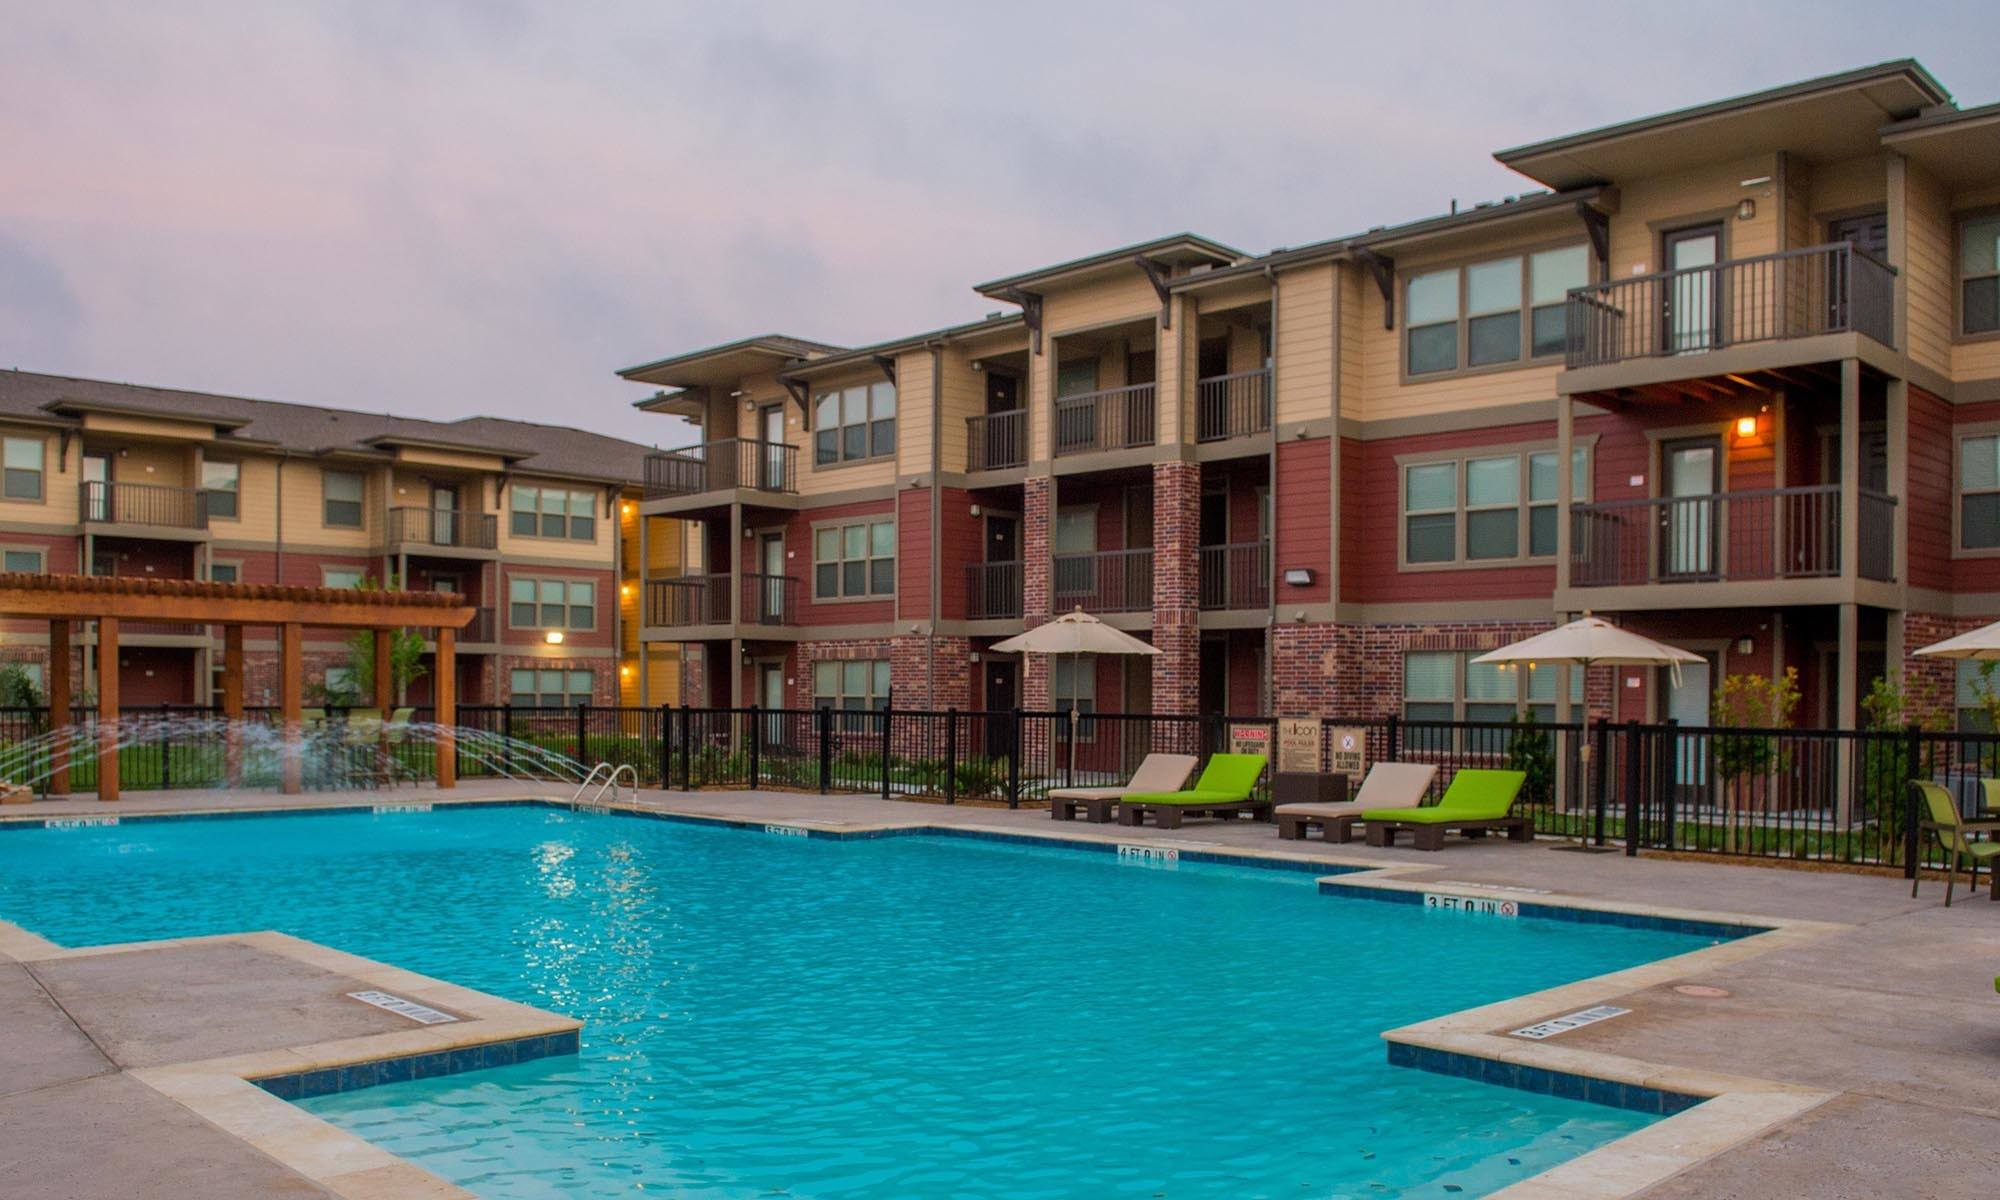 southside corpus christi, tx apartments for rent | icon at corpus